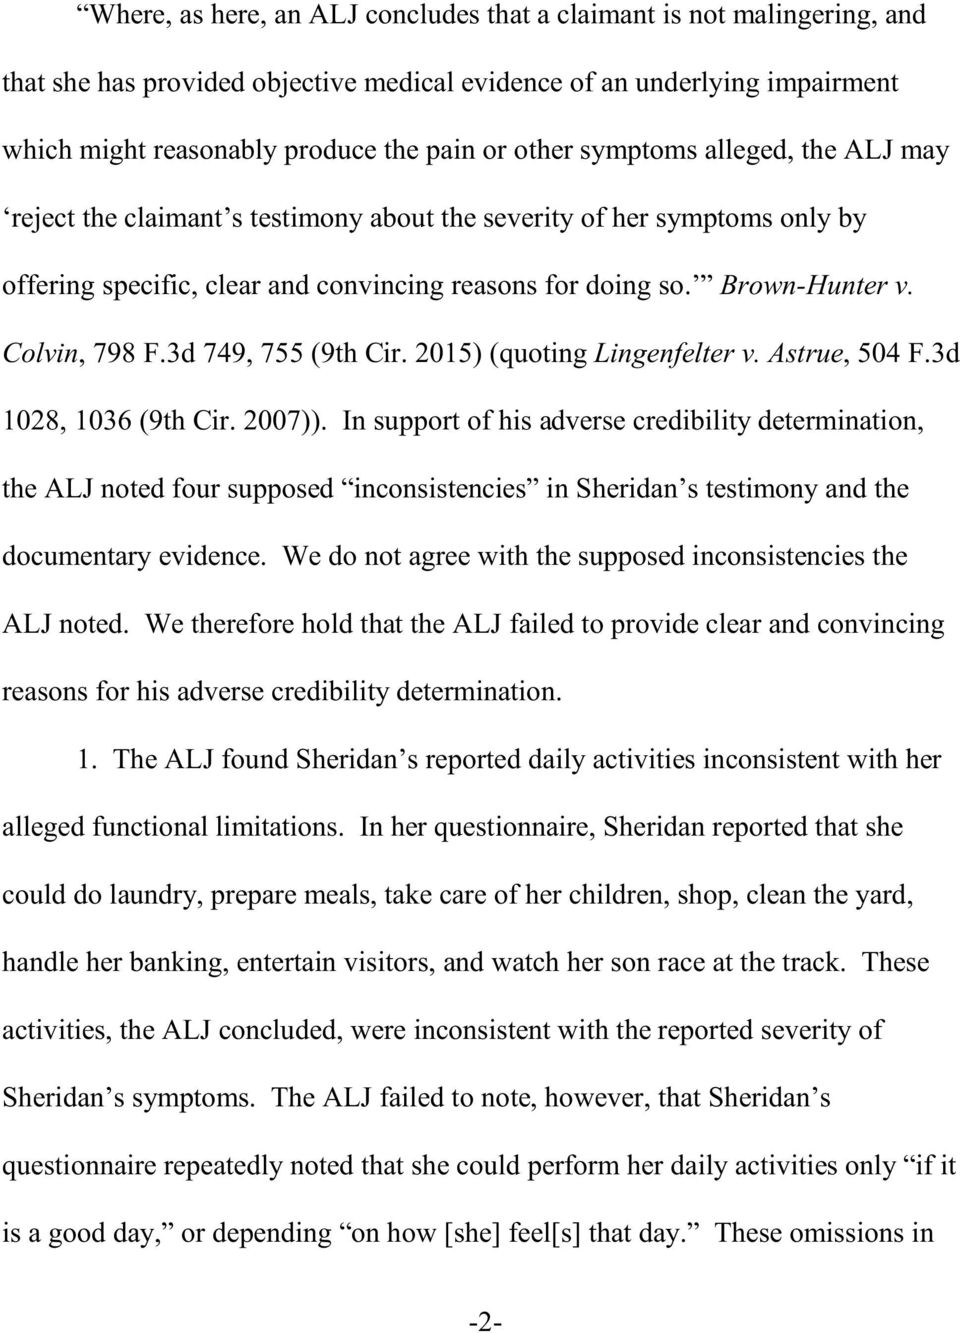 3d 749, 755 (9th Cir. 2015) (quoting Lingenfelter v. Astrue, 504 F.3d 1028, 1036 (9th Cir. 2007)).